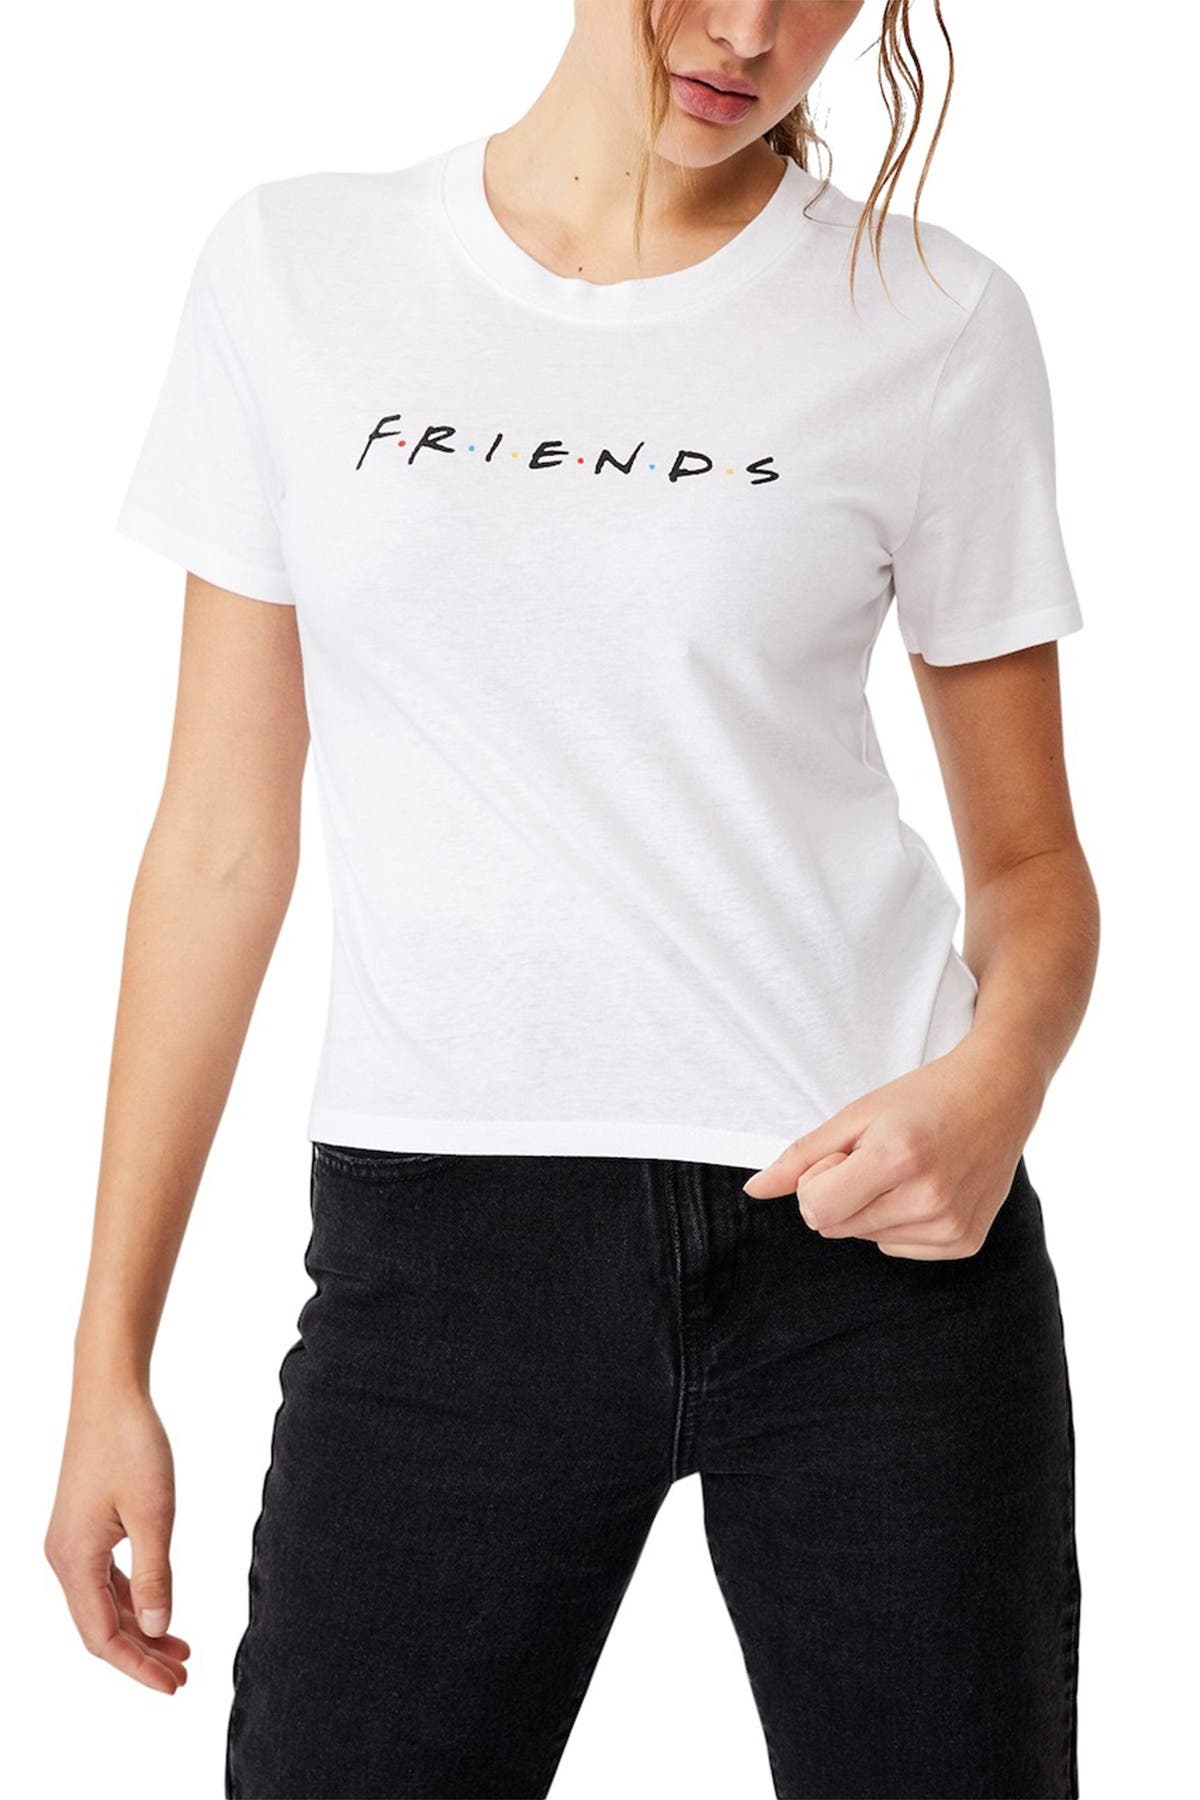 Image of Cotton On Essential Friends T-Shirt